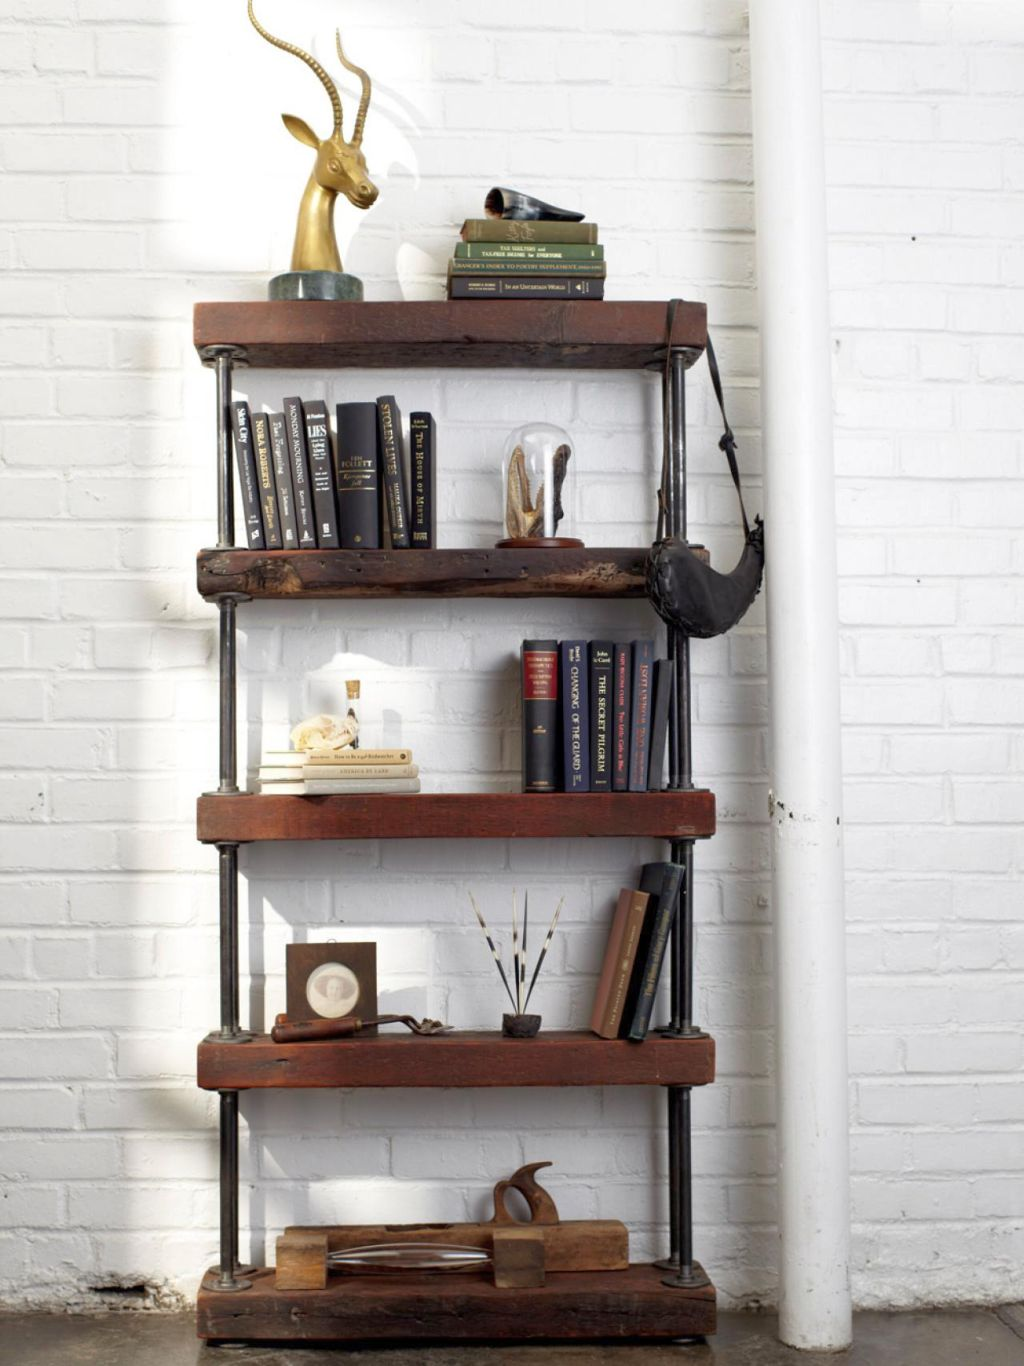 Vintage industrial bookcase designs for small space - Small bookcases for small spaces design ...